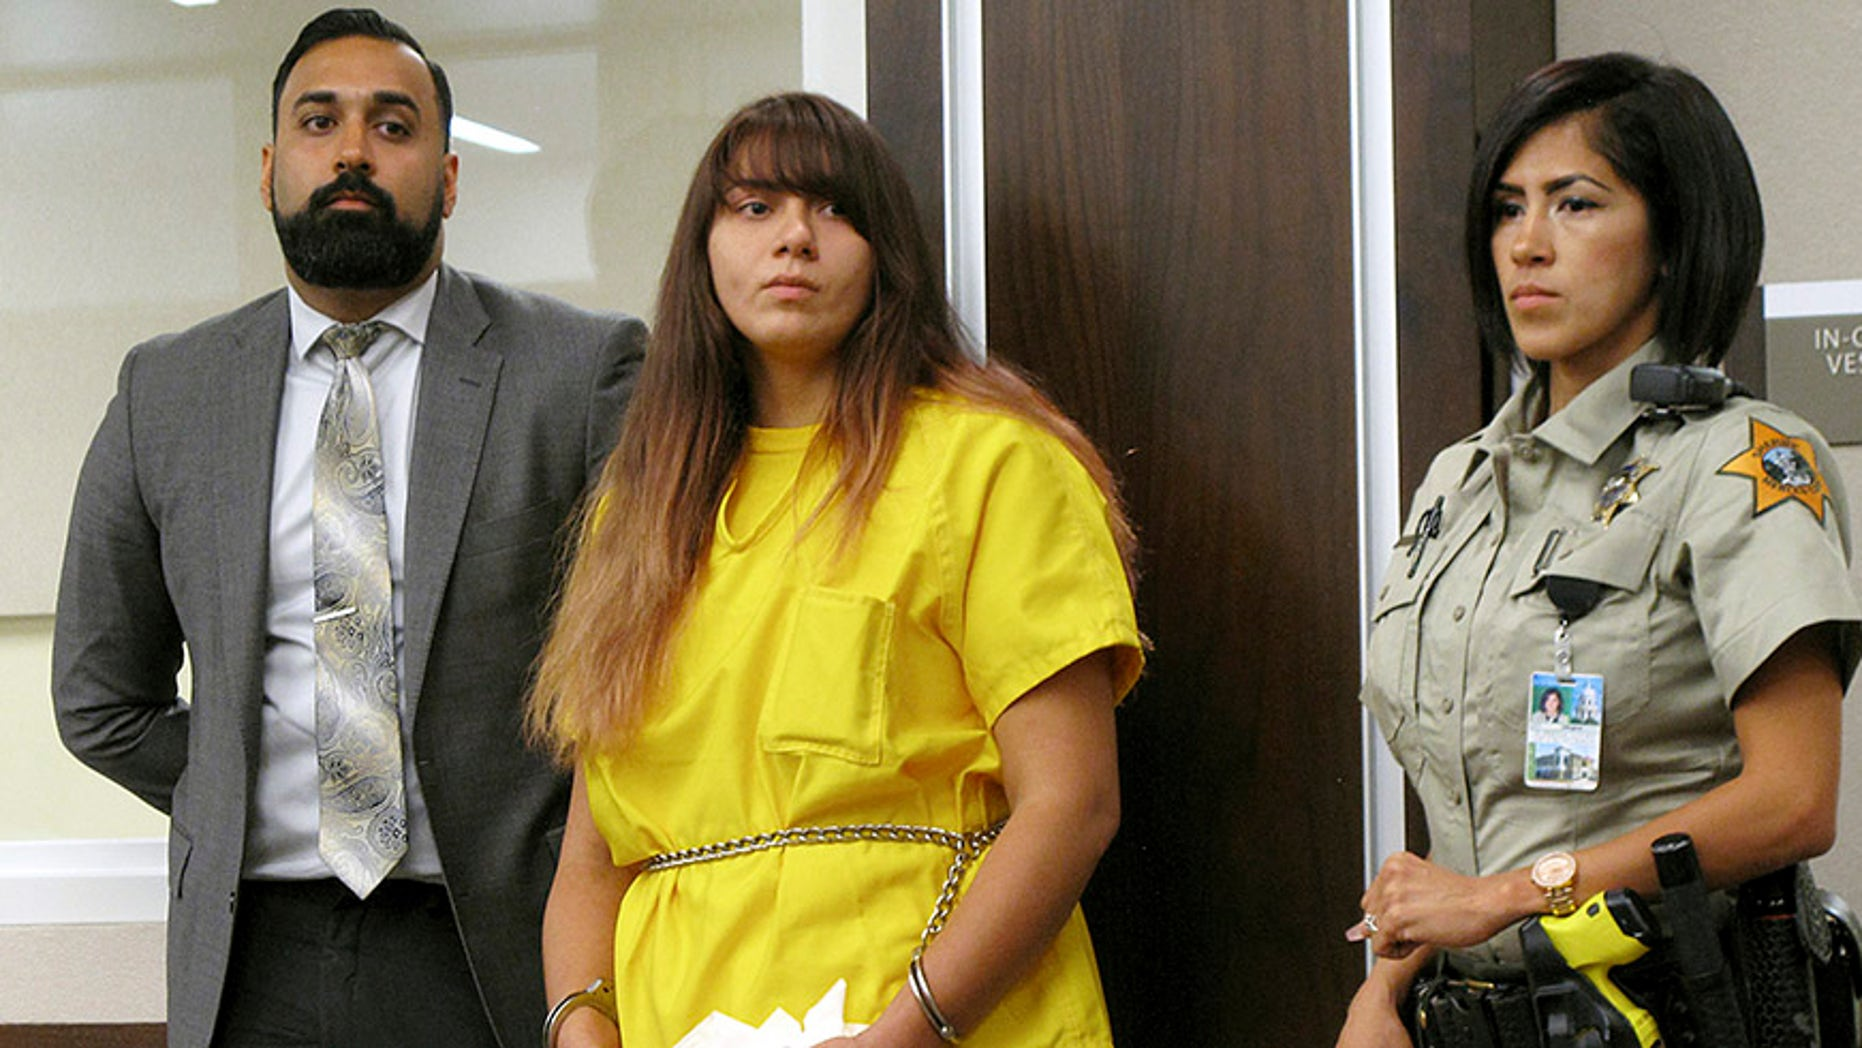 FILE - In this July 28, 2017 file photo, Obdulia Sanchez, 18, middle, appears in a Los Banos, Calif., branch of the Merced County Superior Court with her public defender, Ramnik Samrao. In a court appearance Friday, Aug. 11, 2017, her attorney said Sanchez, accused of driving drunk while livestreaming the July 21, 2017 crash that killed her younger sister, said a mechanical problem may have caused the accident. (AP Photo/Scott Smith, File)